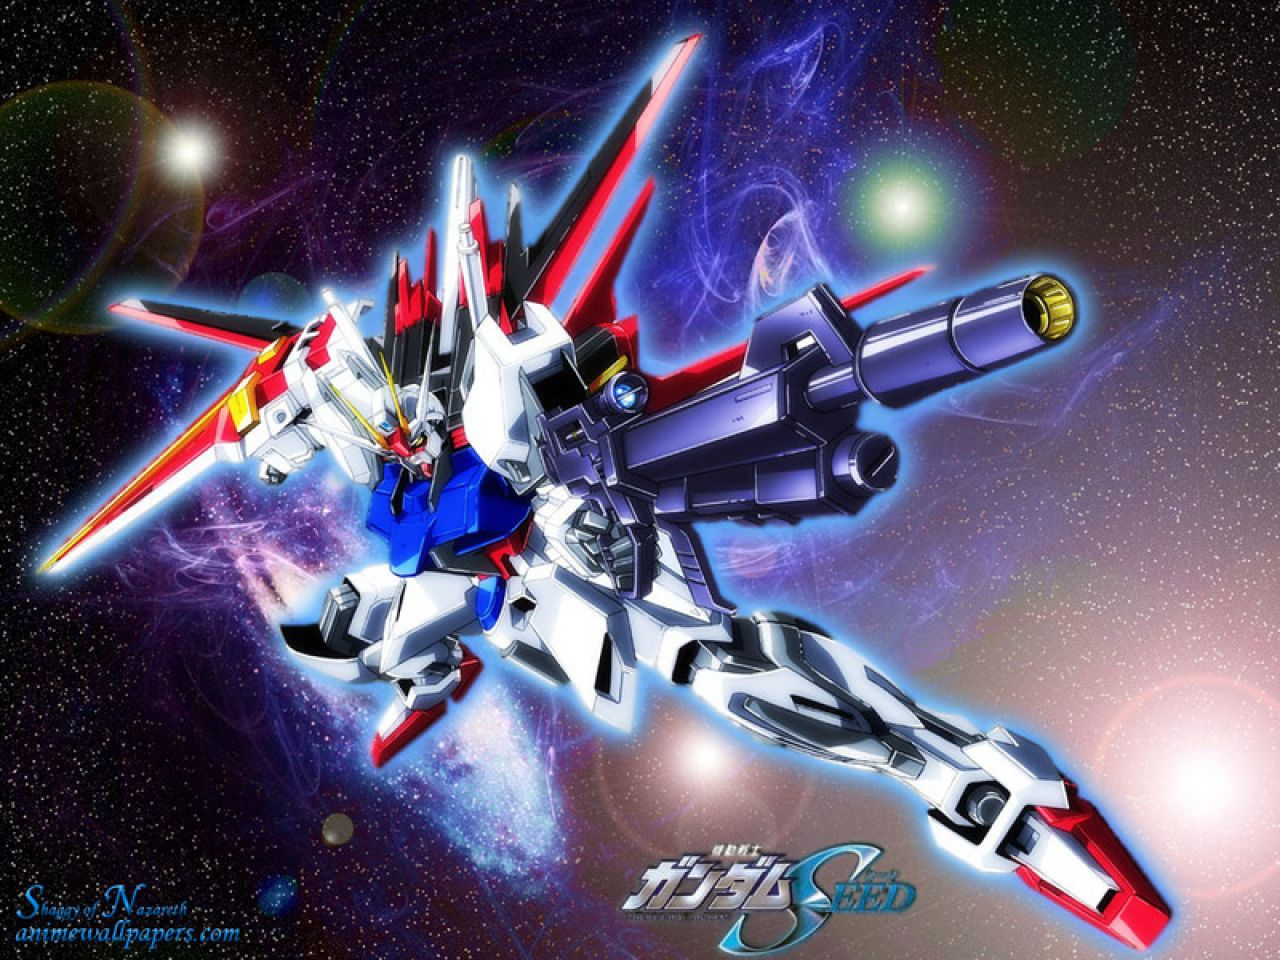 Gundam Seed wallpapers Gundam Seed background   Page 5 1280x960